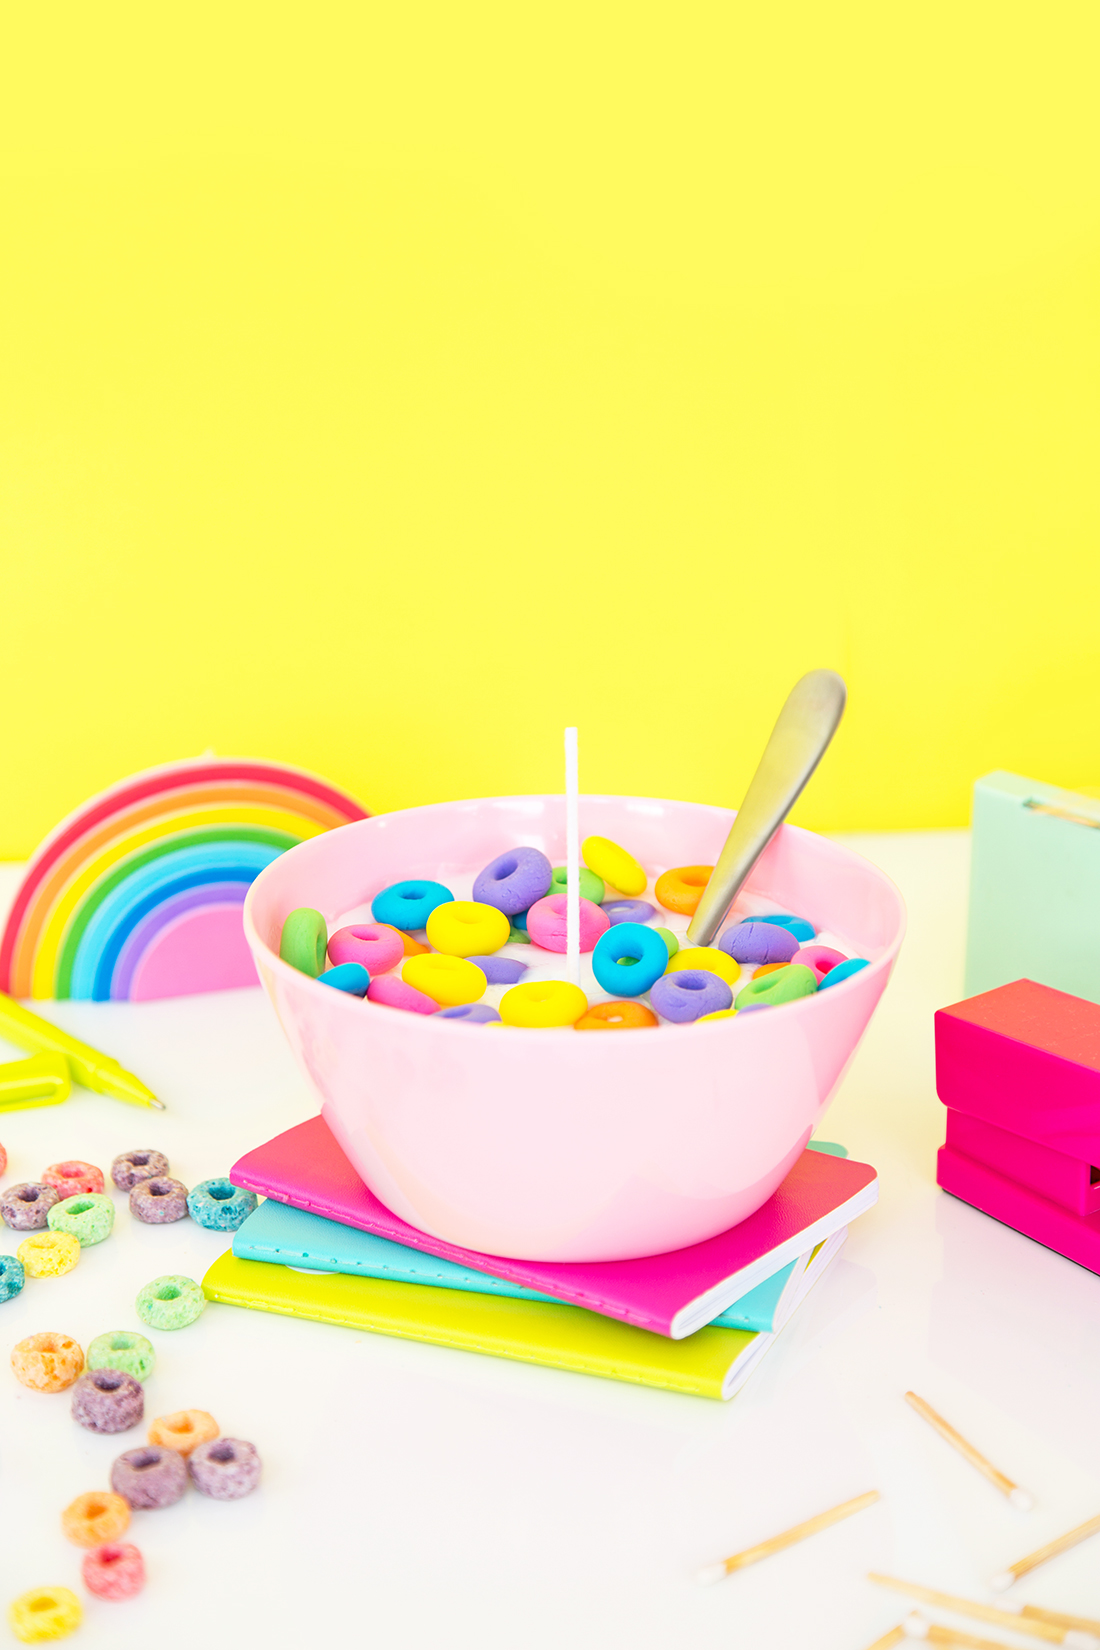 » DIY Cereal Bowl Candle